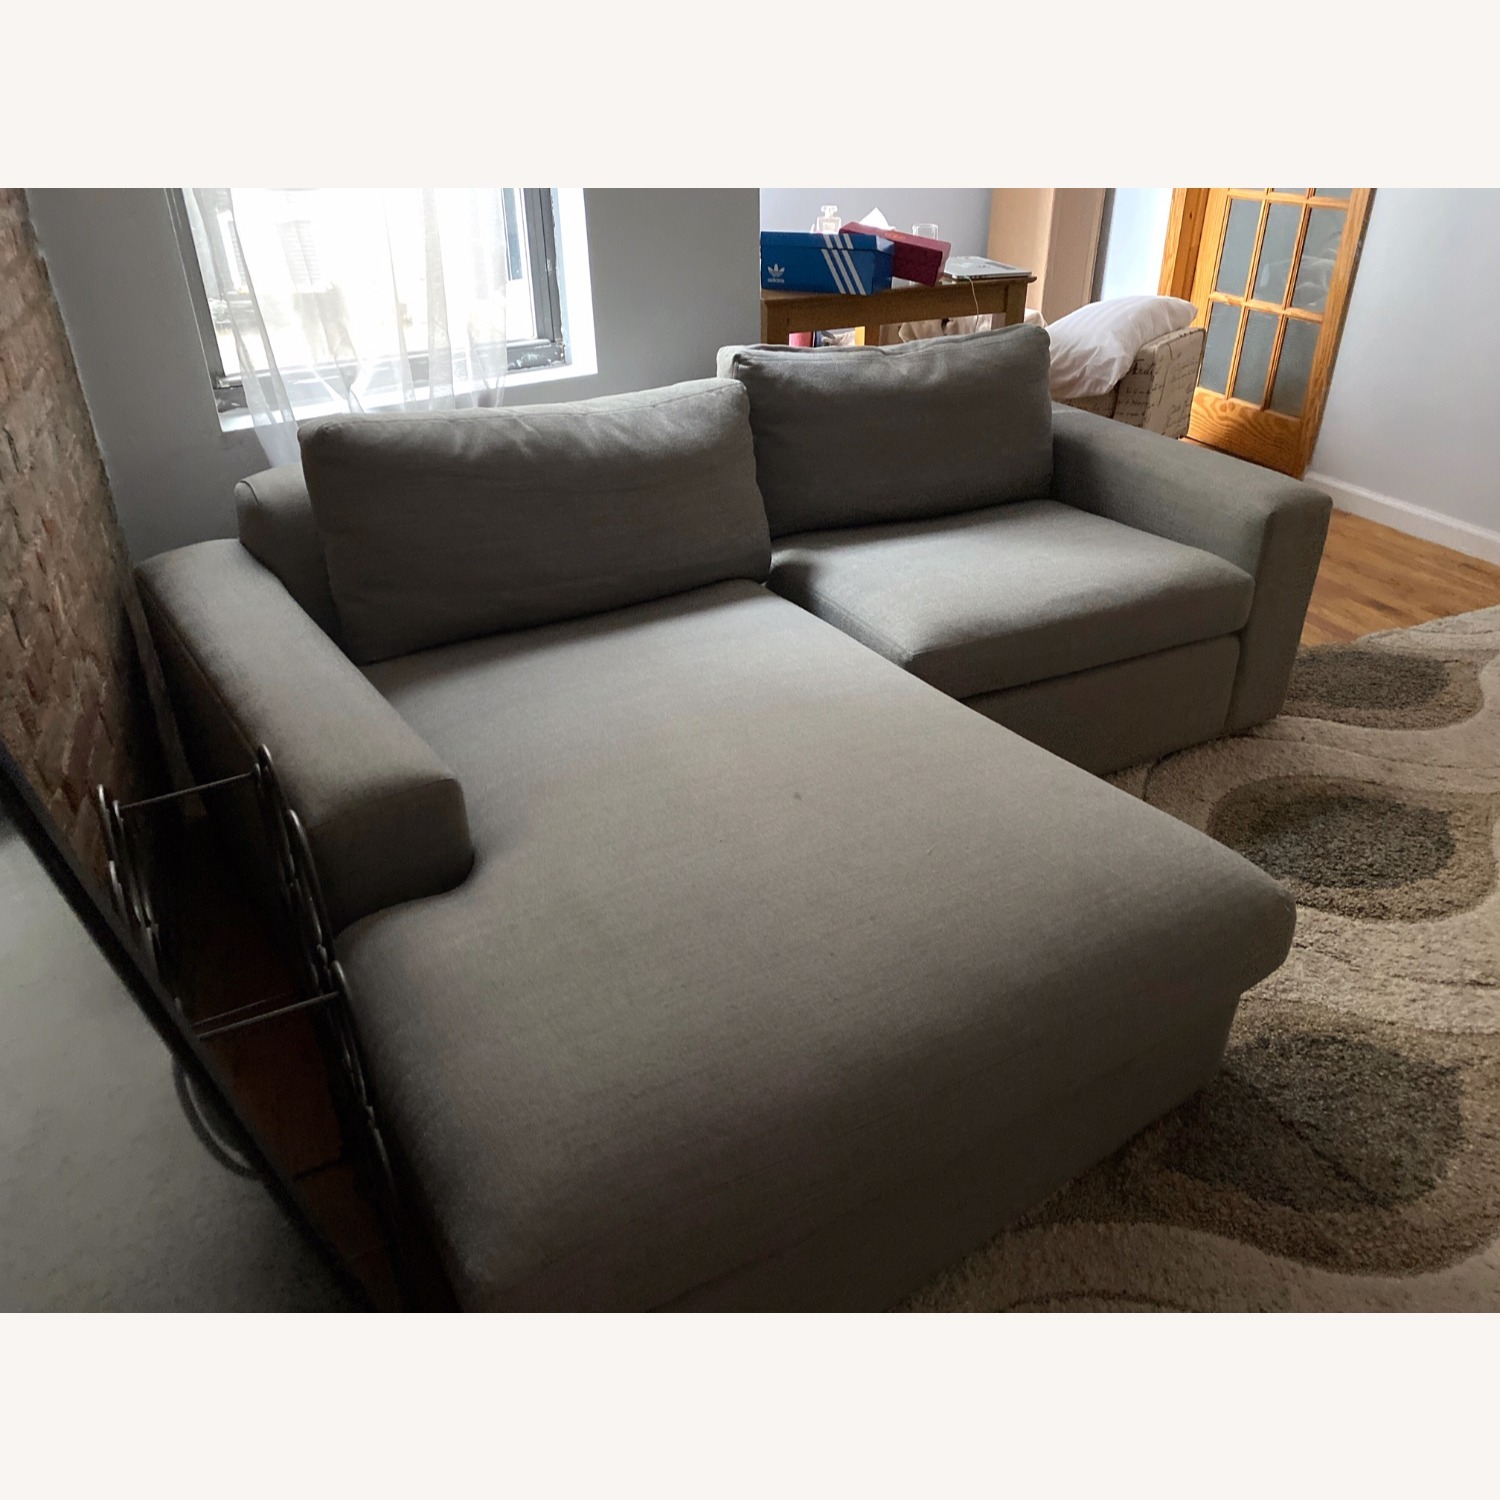 Room & Board Sectional Couch - image-2